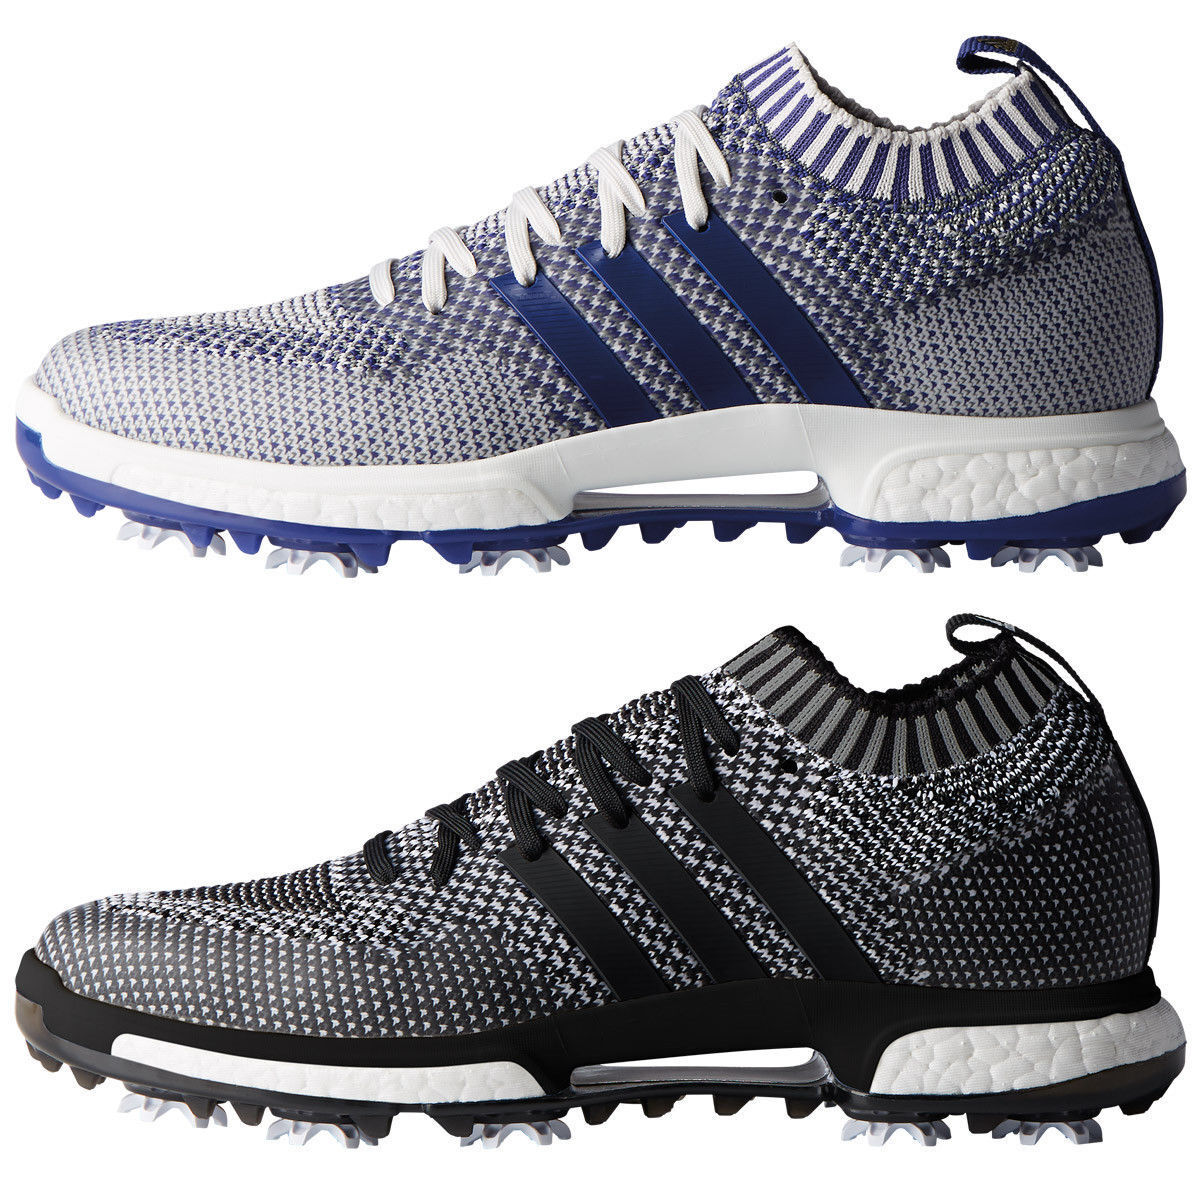 Adidas Tour 360 Knit Waterproof Spiked